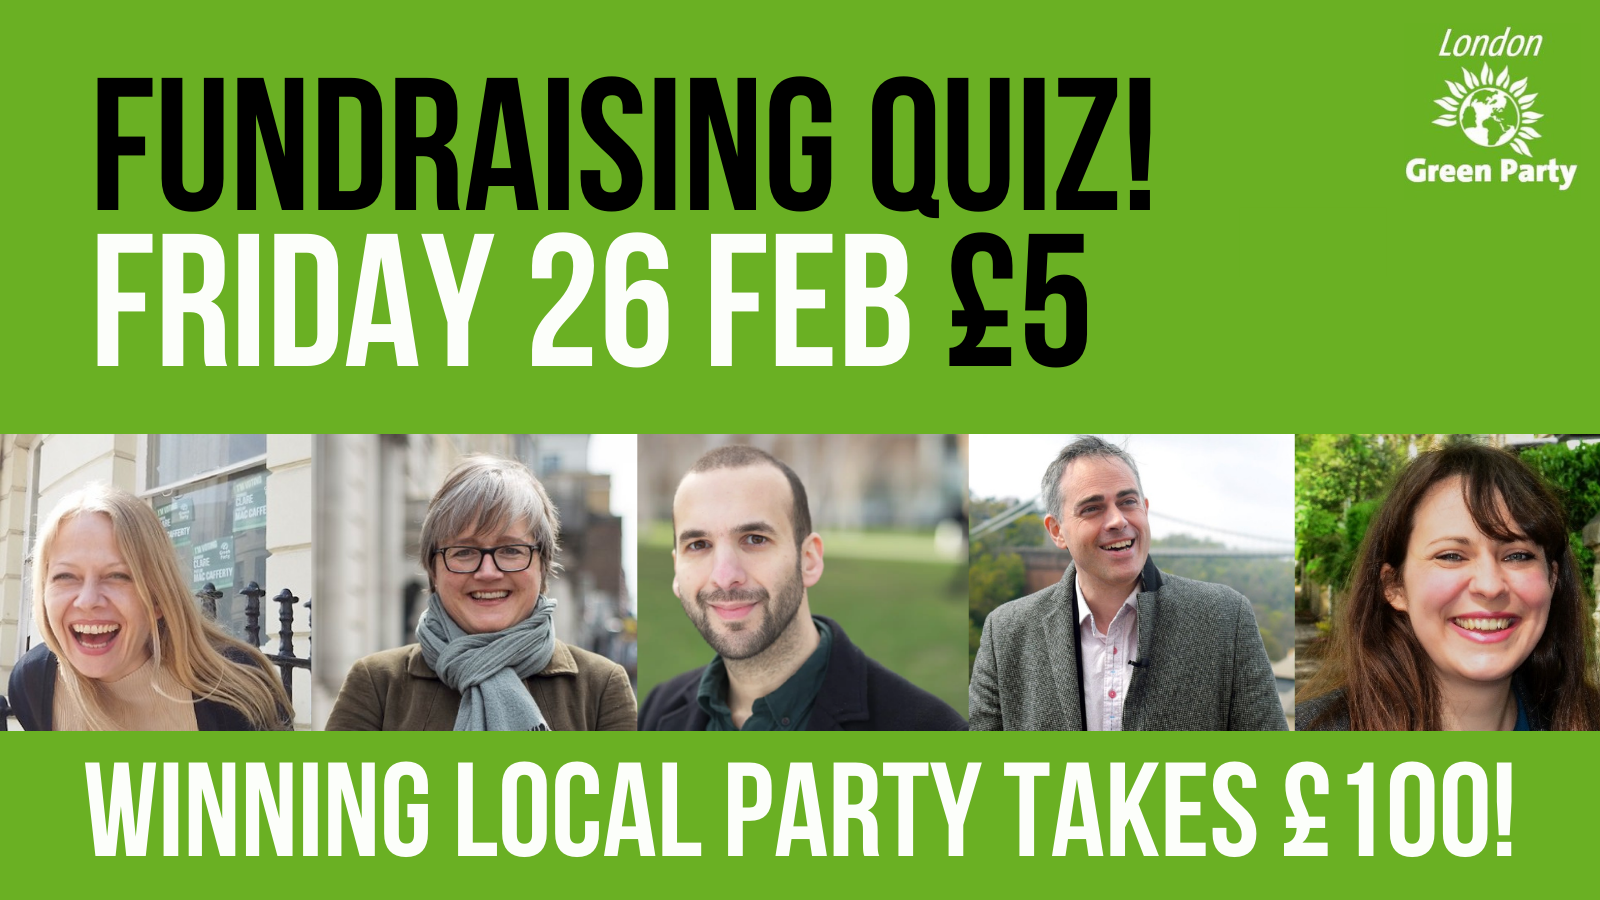 London Green Party Fundraising Quiz